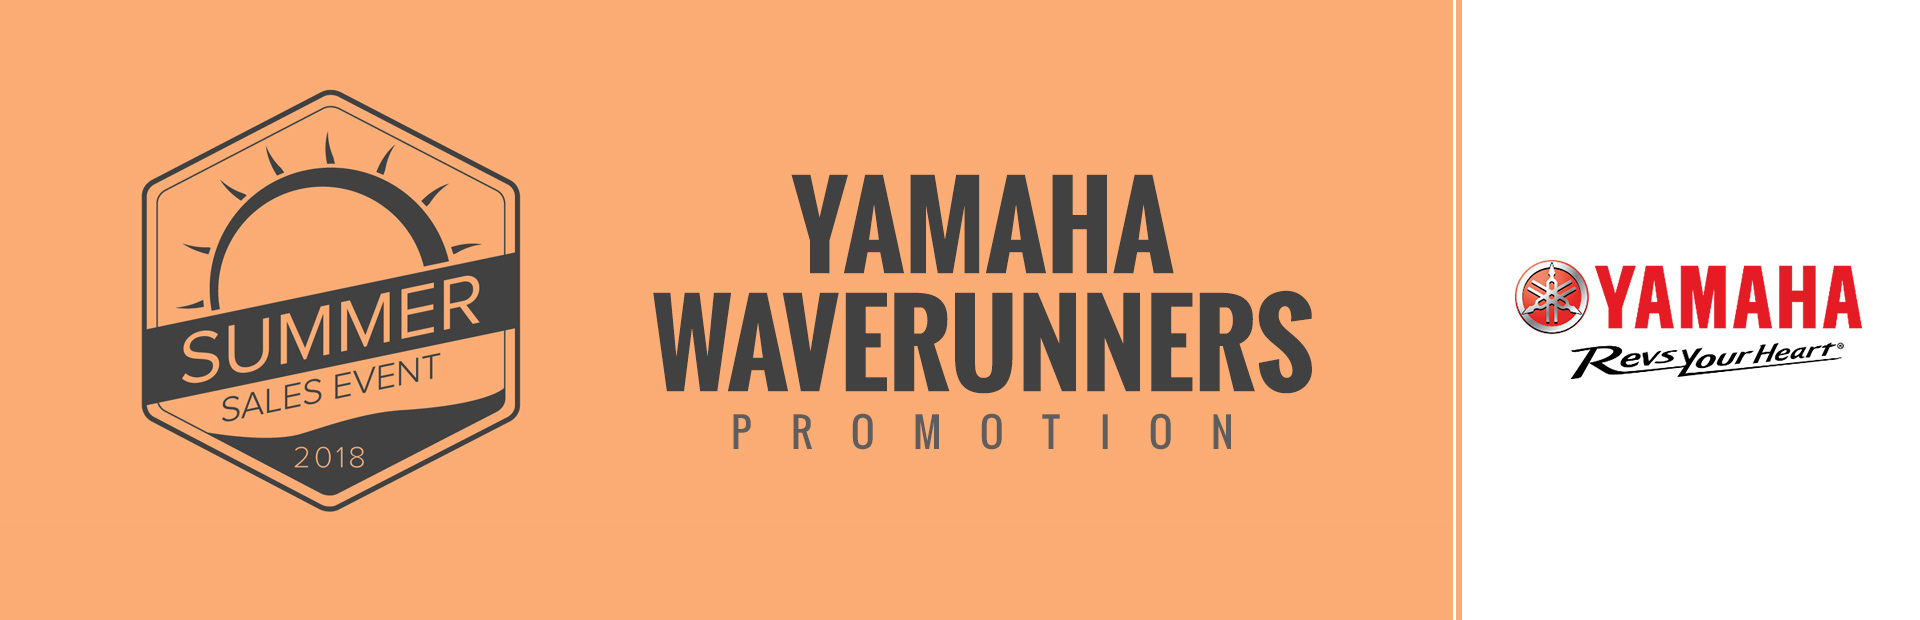 Yamaha: Summer Sales Event